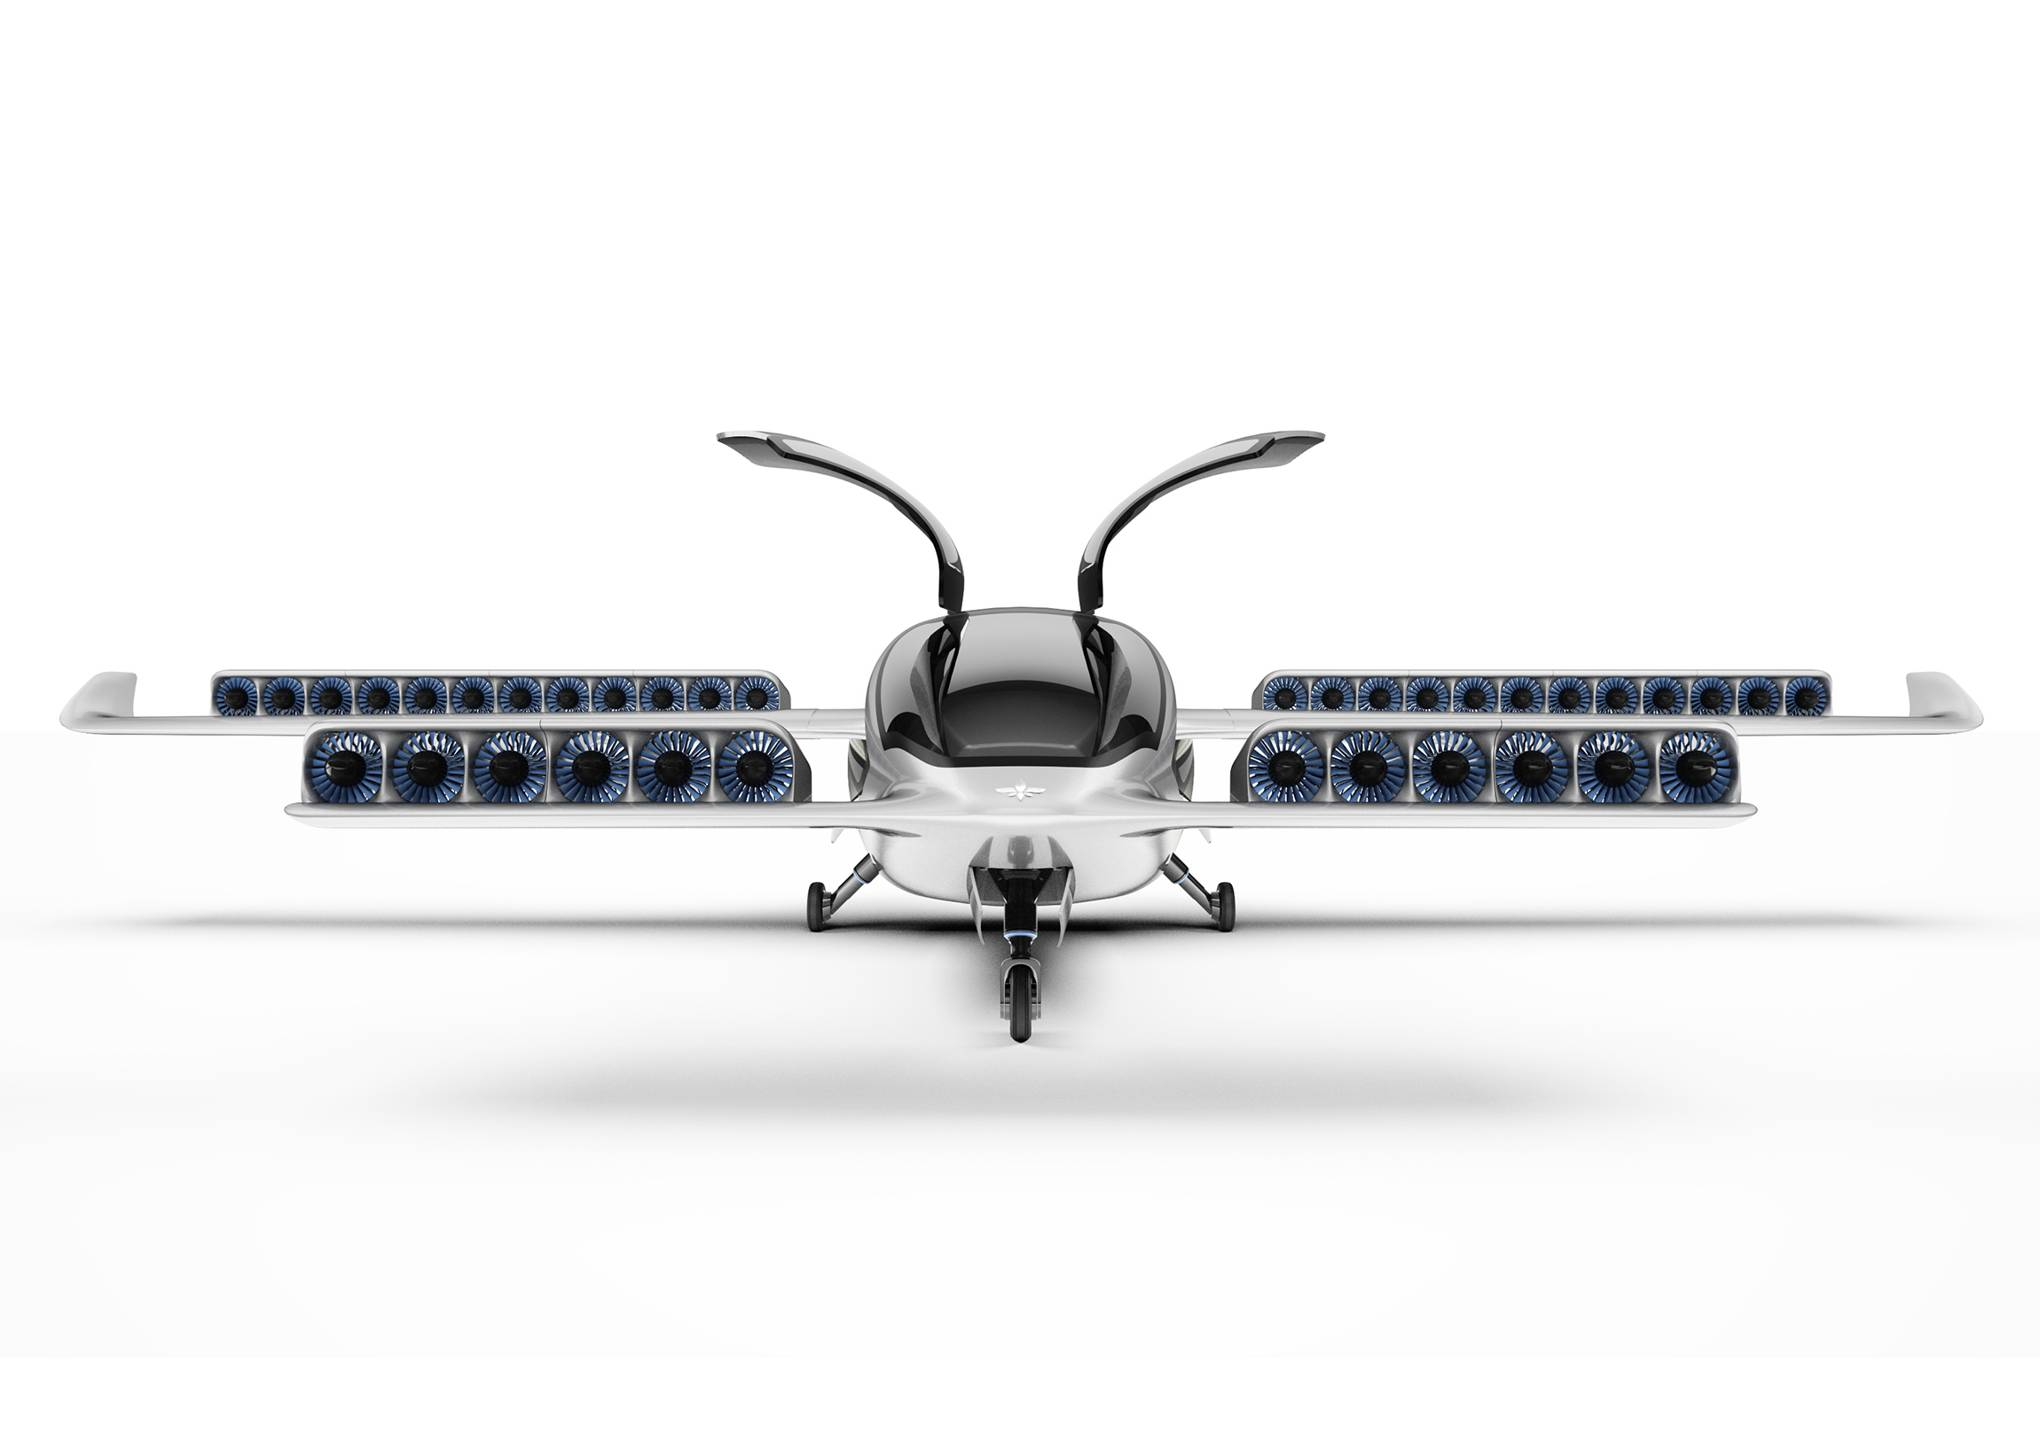 Lilium's futuristic electric plane is about to get a big